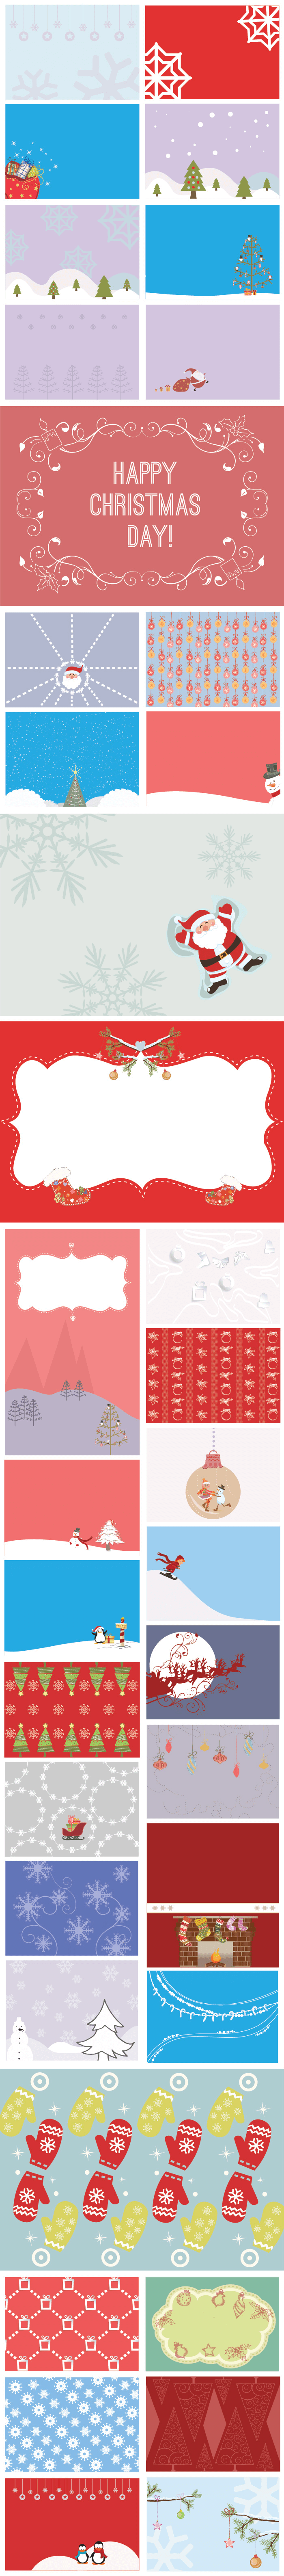 Background winter images with large Christmas trees and snowflakes.